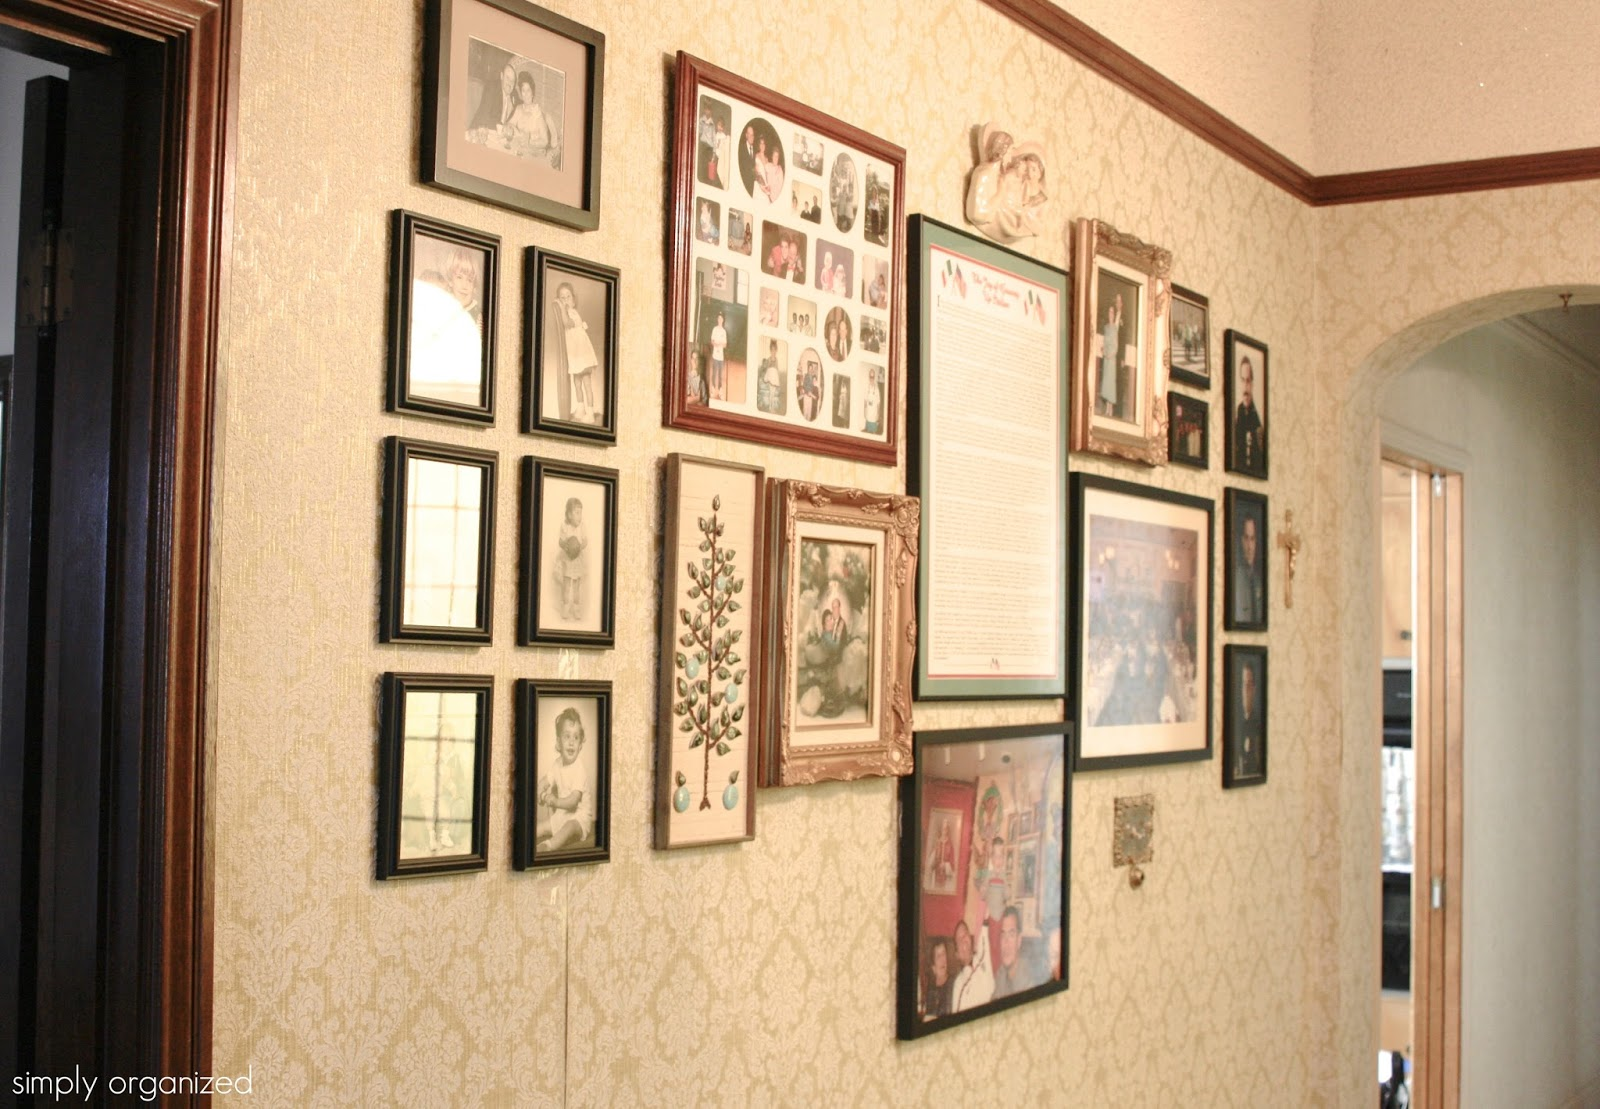 Simply done the bachelor simply organized the history on this wall blows my mind each frame was hung with meaning jeuxipadfo Gallery